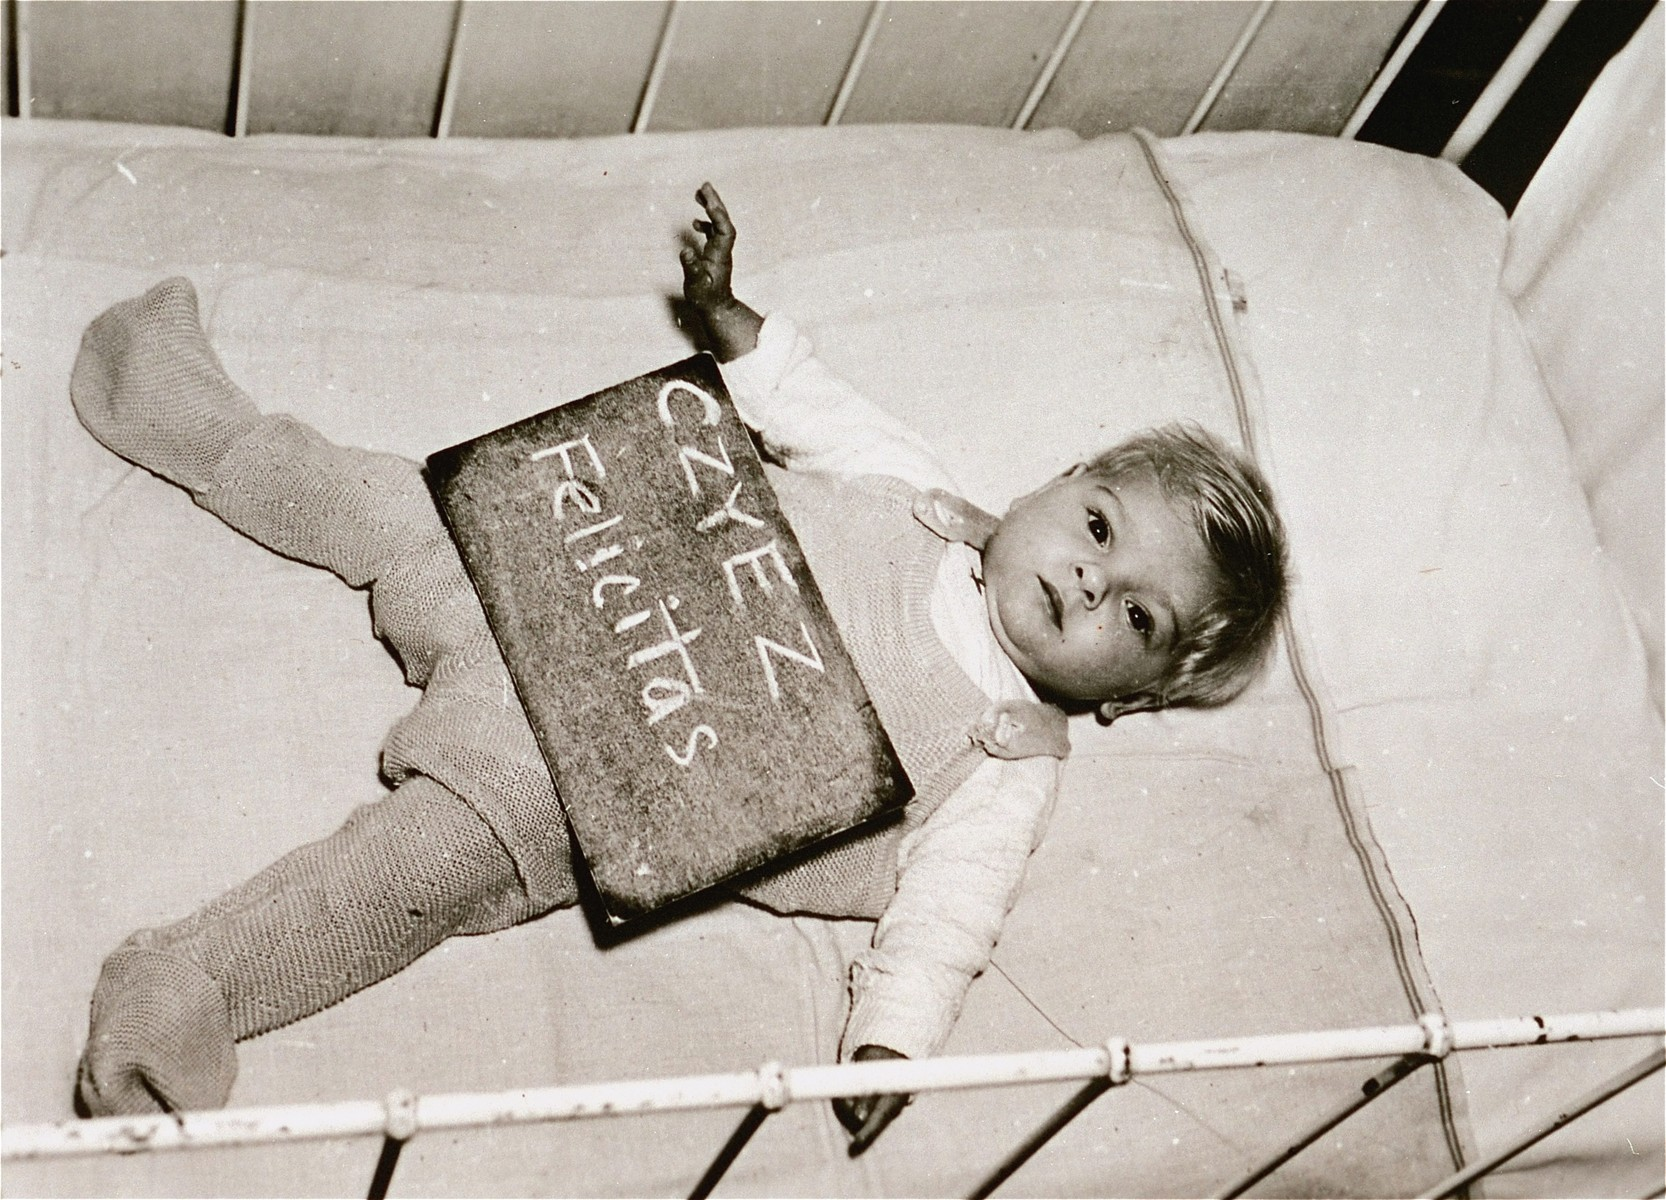 Infant Felicitas Czyez with a name card intended to help any of her surviving family members locate her at the Kloster Indersdorf DP camp.  This photograph was published in newspapers to facilitate reuniting the family.